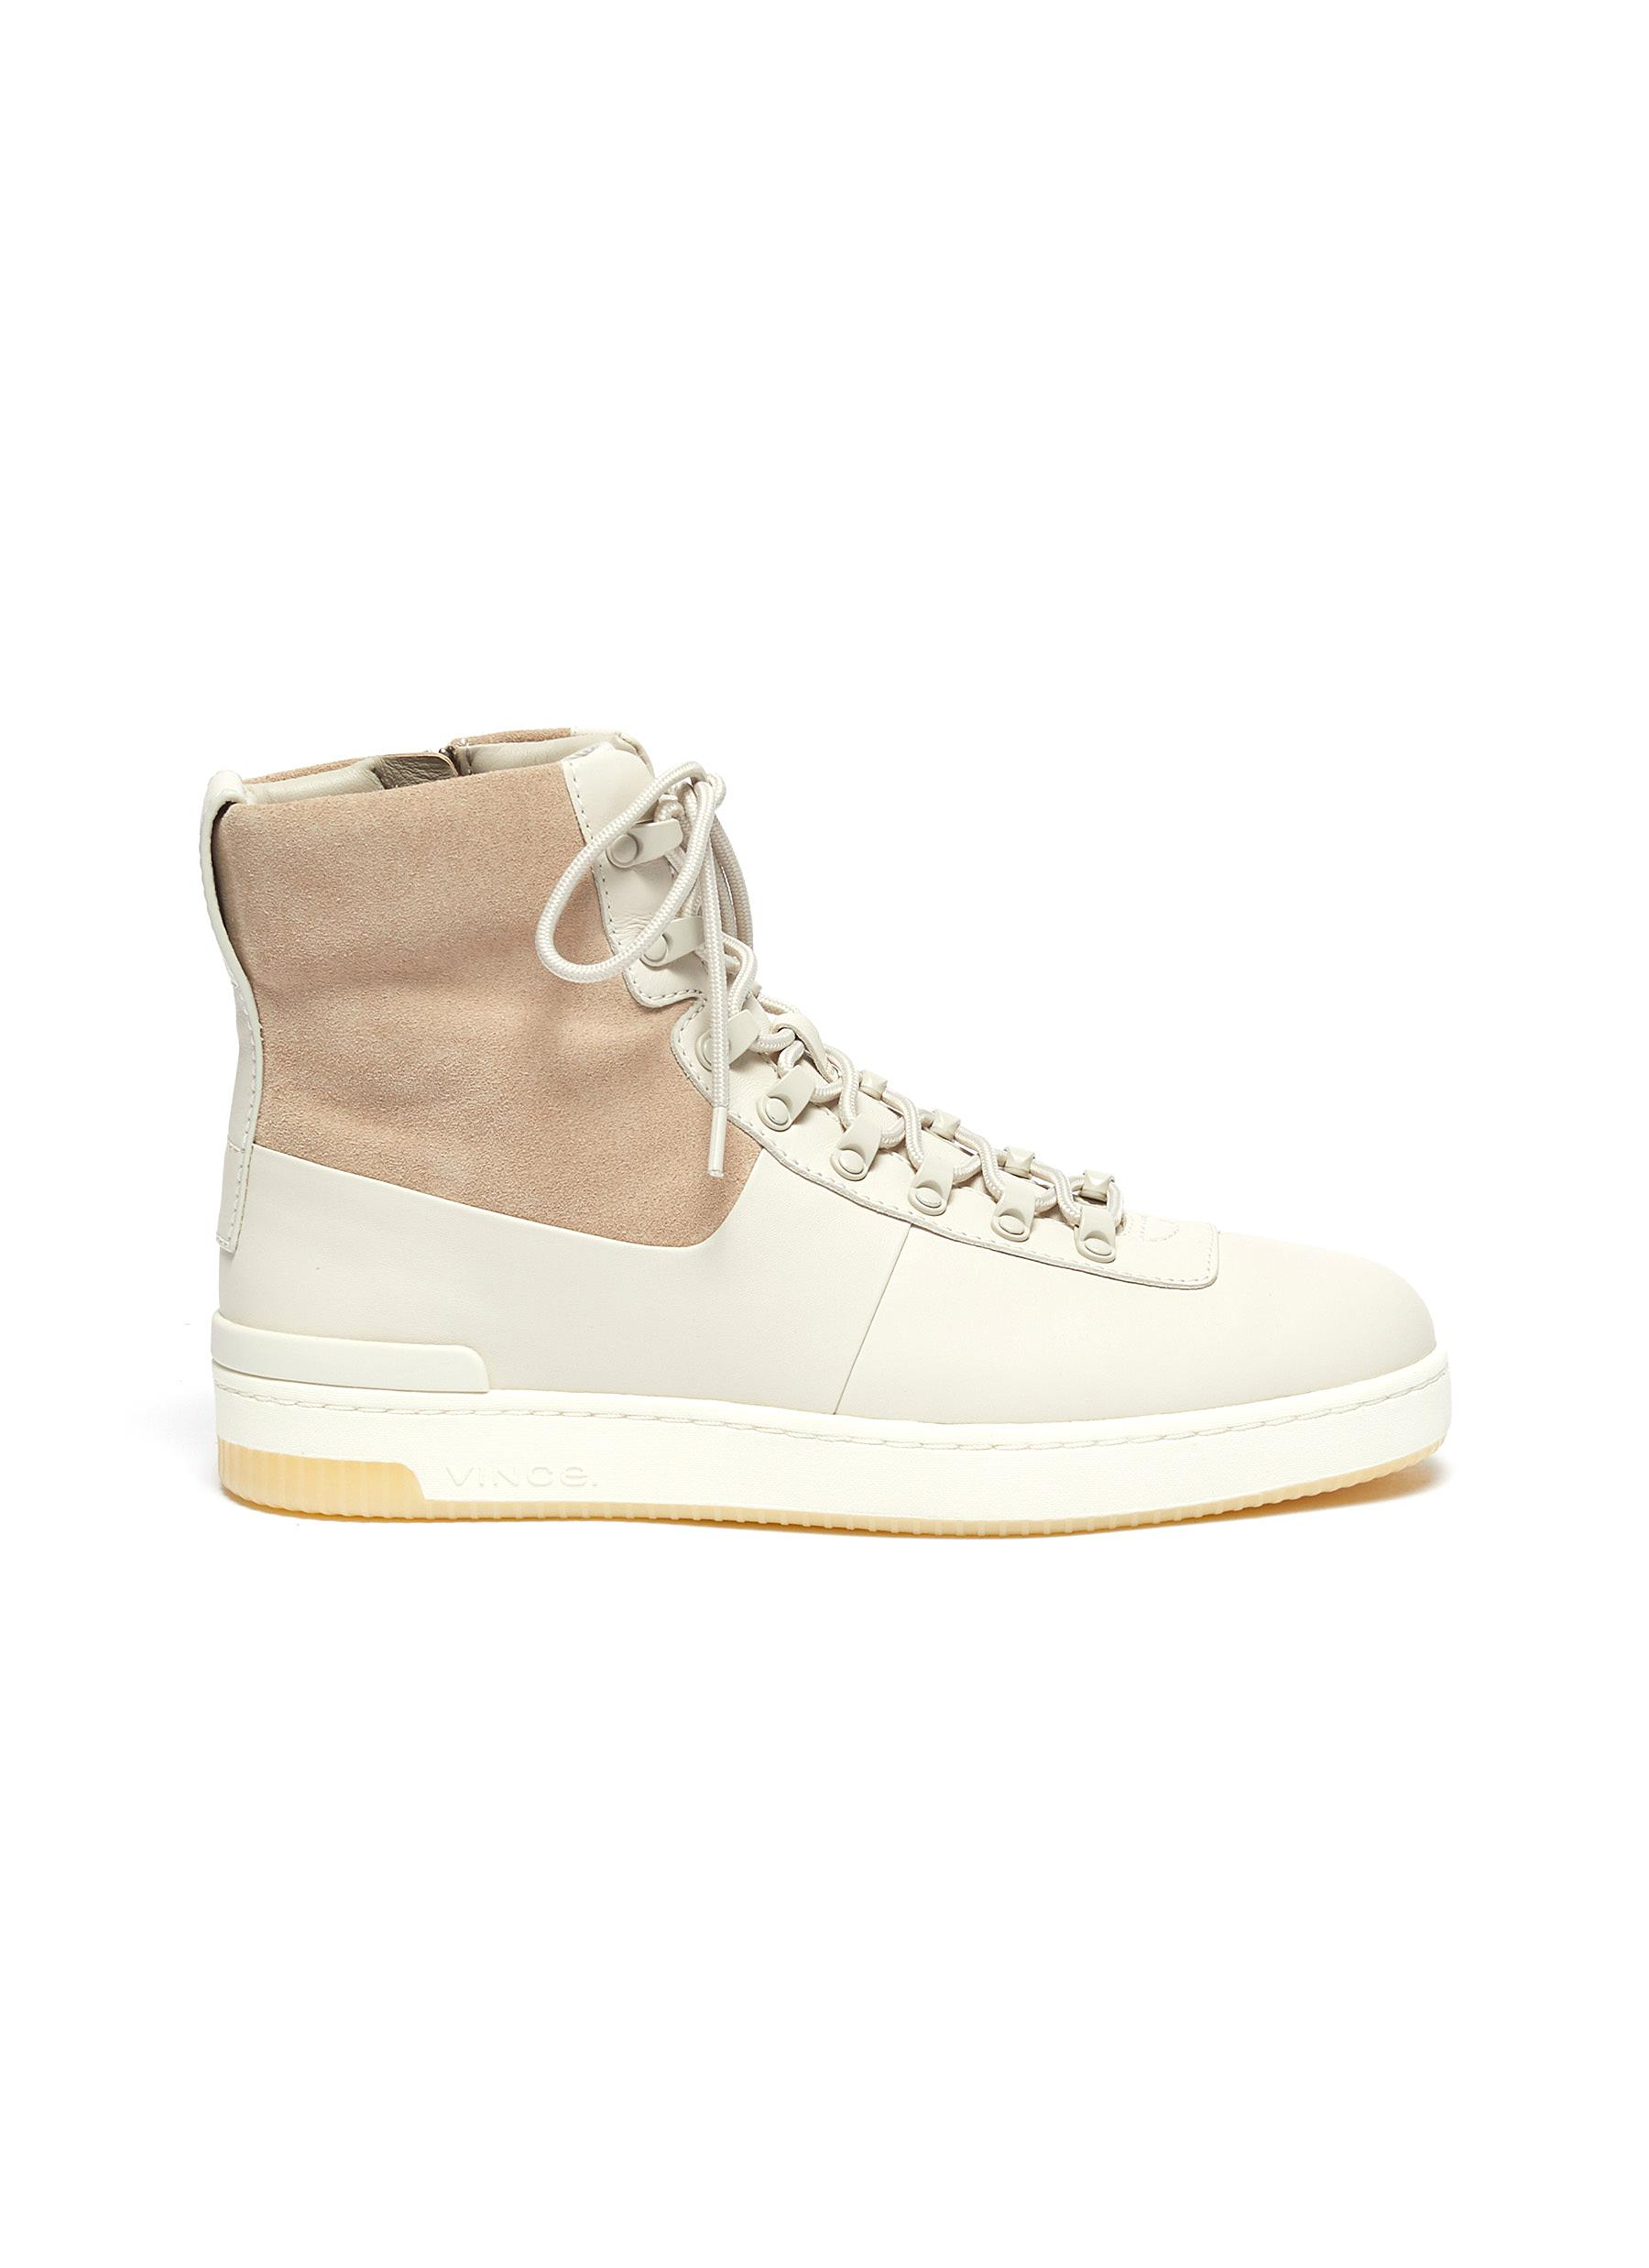 Rowan suede panel leather high top sneakers by Vince